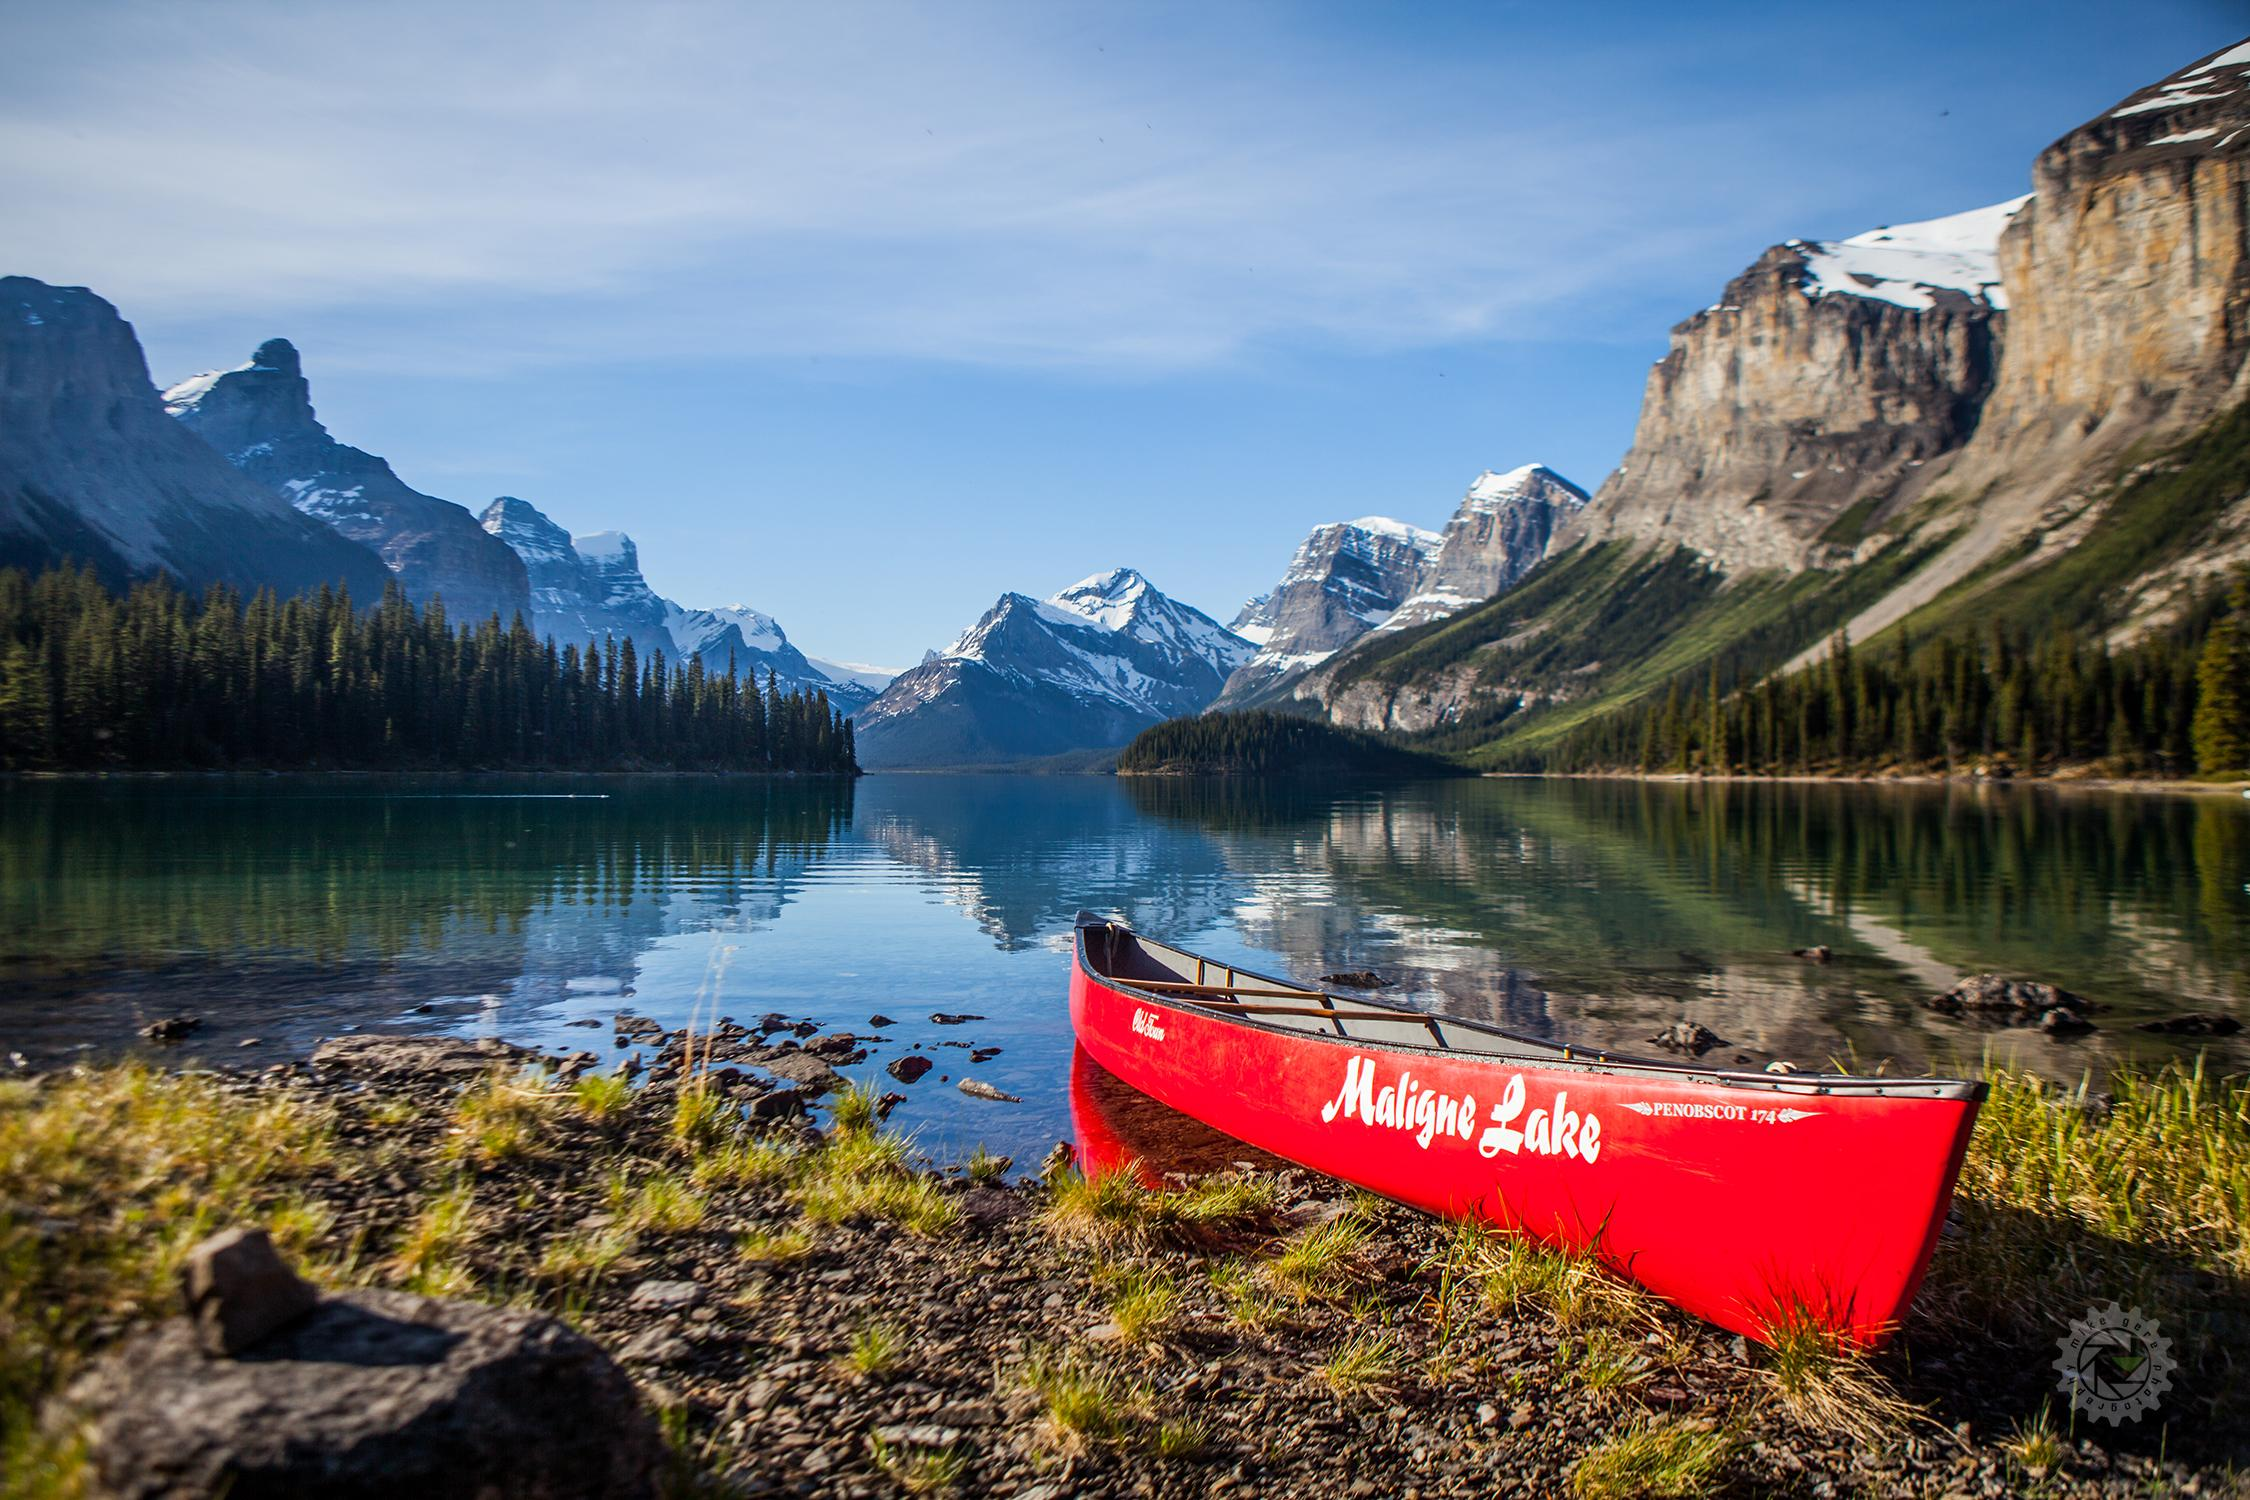 mike,gere,photo,photography,jasper,alberta,national,park,canada,maligne,lake,canoe